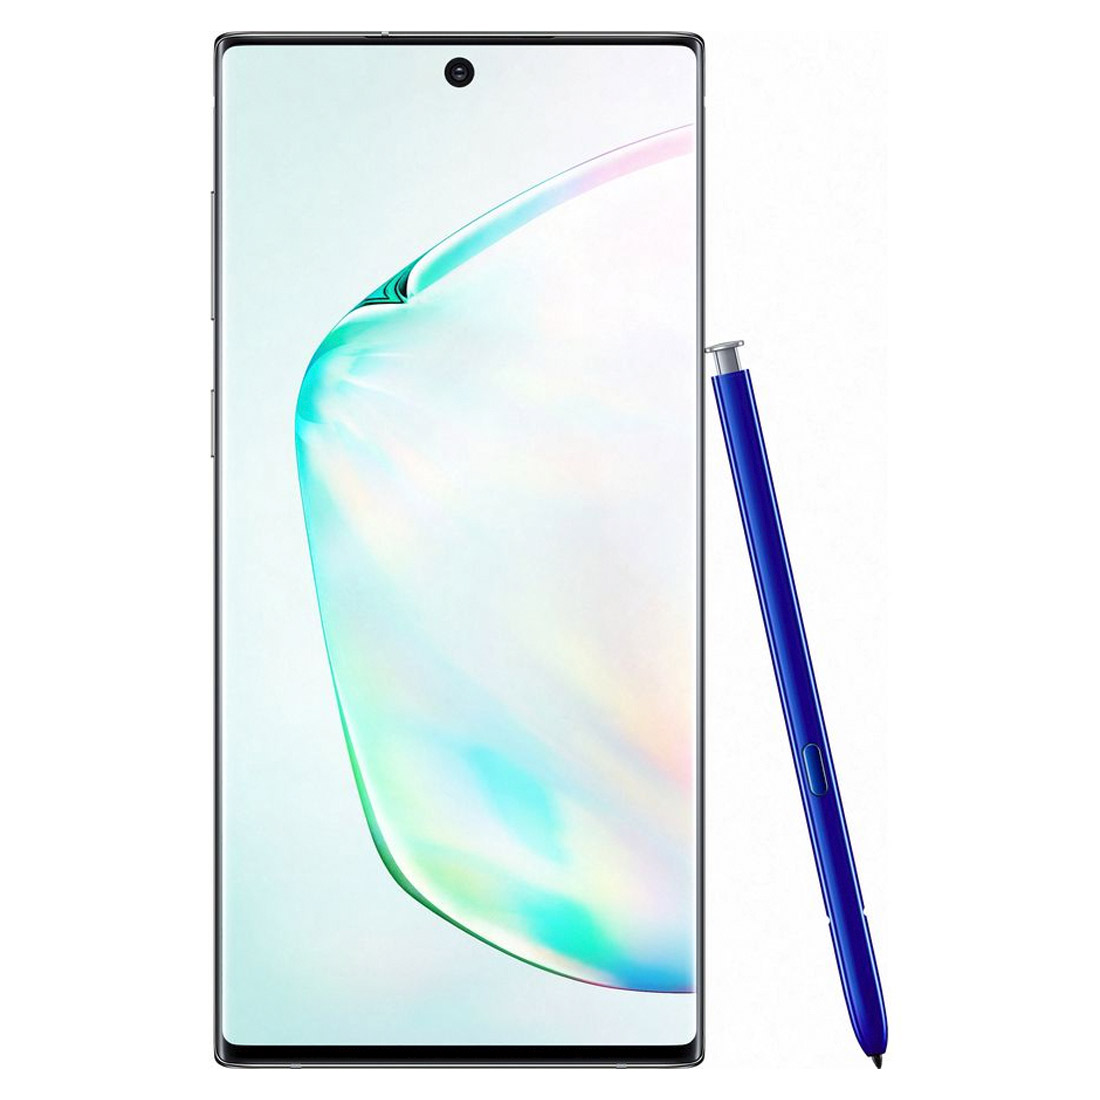 "Smartphone SAMSUNG Galaxy Note 10 PLUS 2.84 GHz 6.8"" Glow + Regalo"